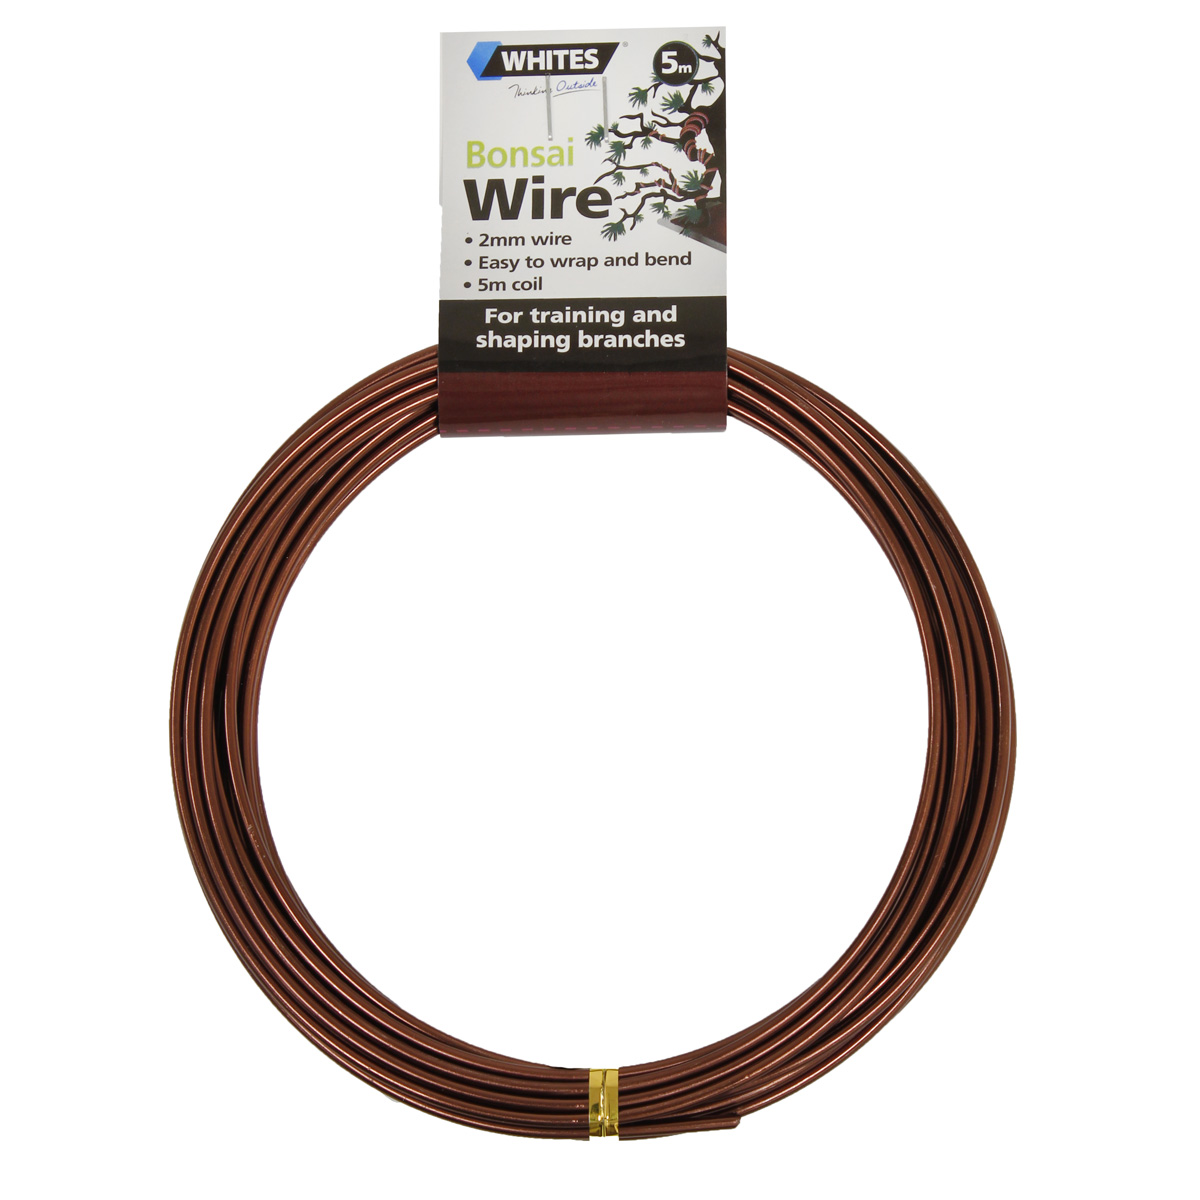 50018 - Bonsai Wire 5m